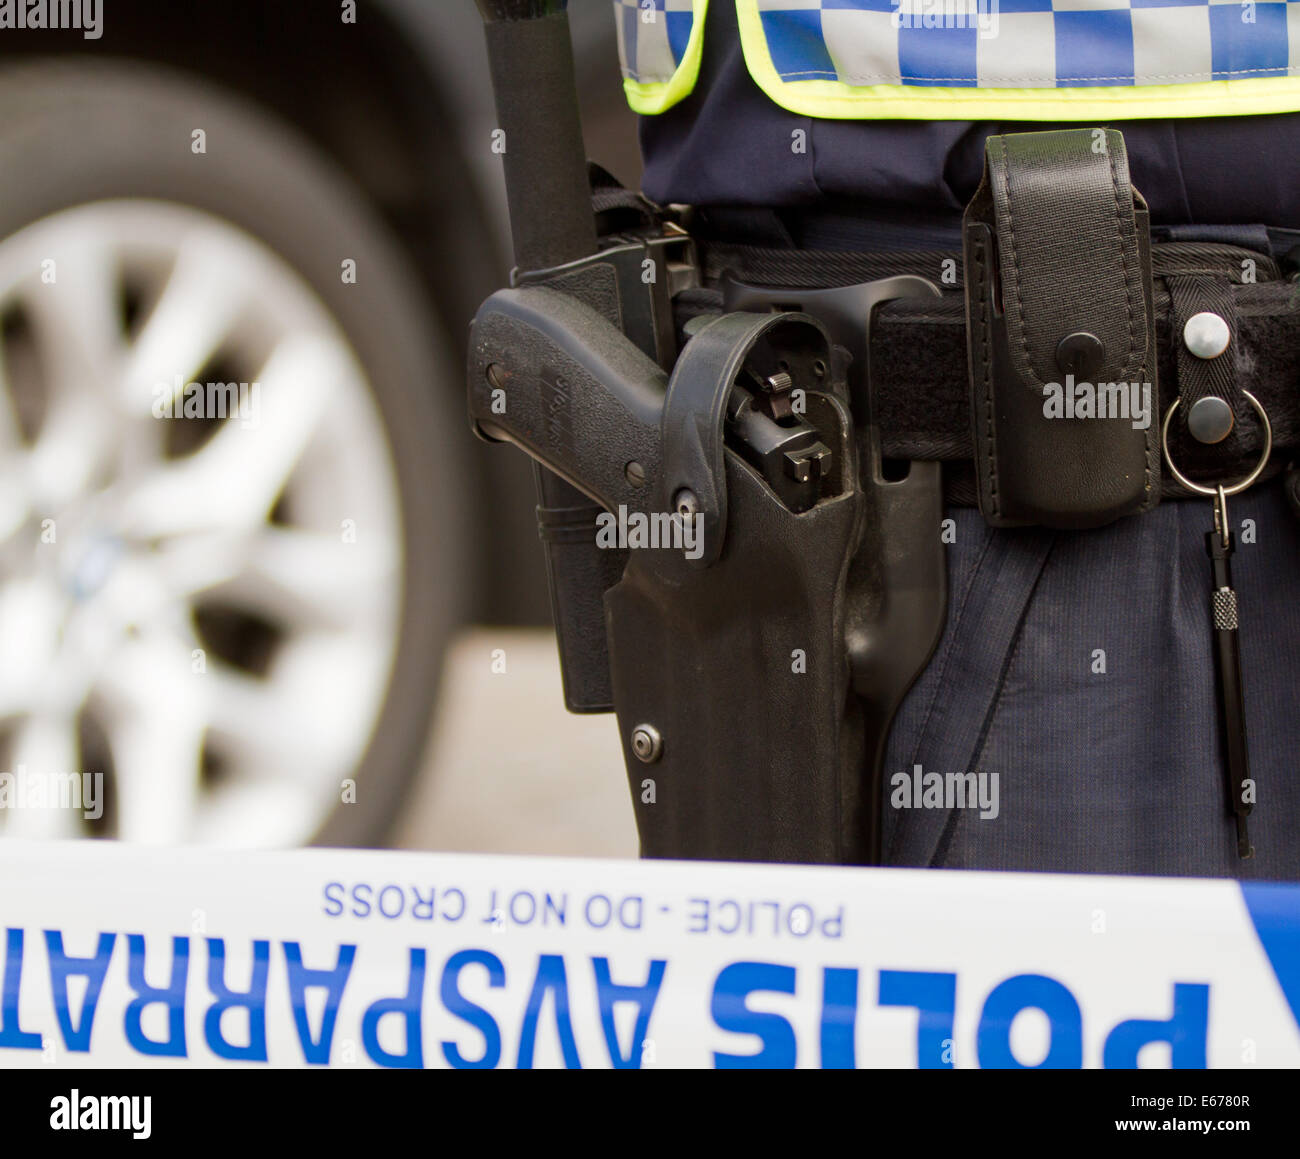 Gun in a gun belt of a Swedish policeman while standing behind the line that has sealed off public entrance. Stock Photo